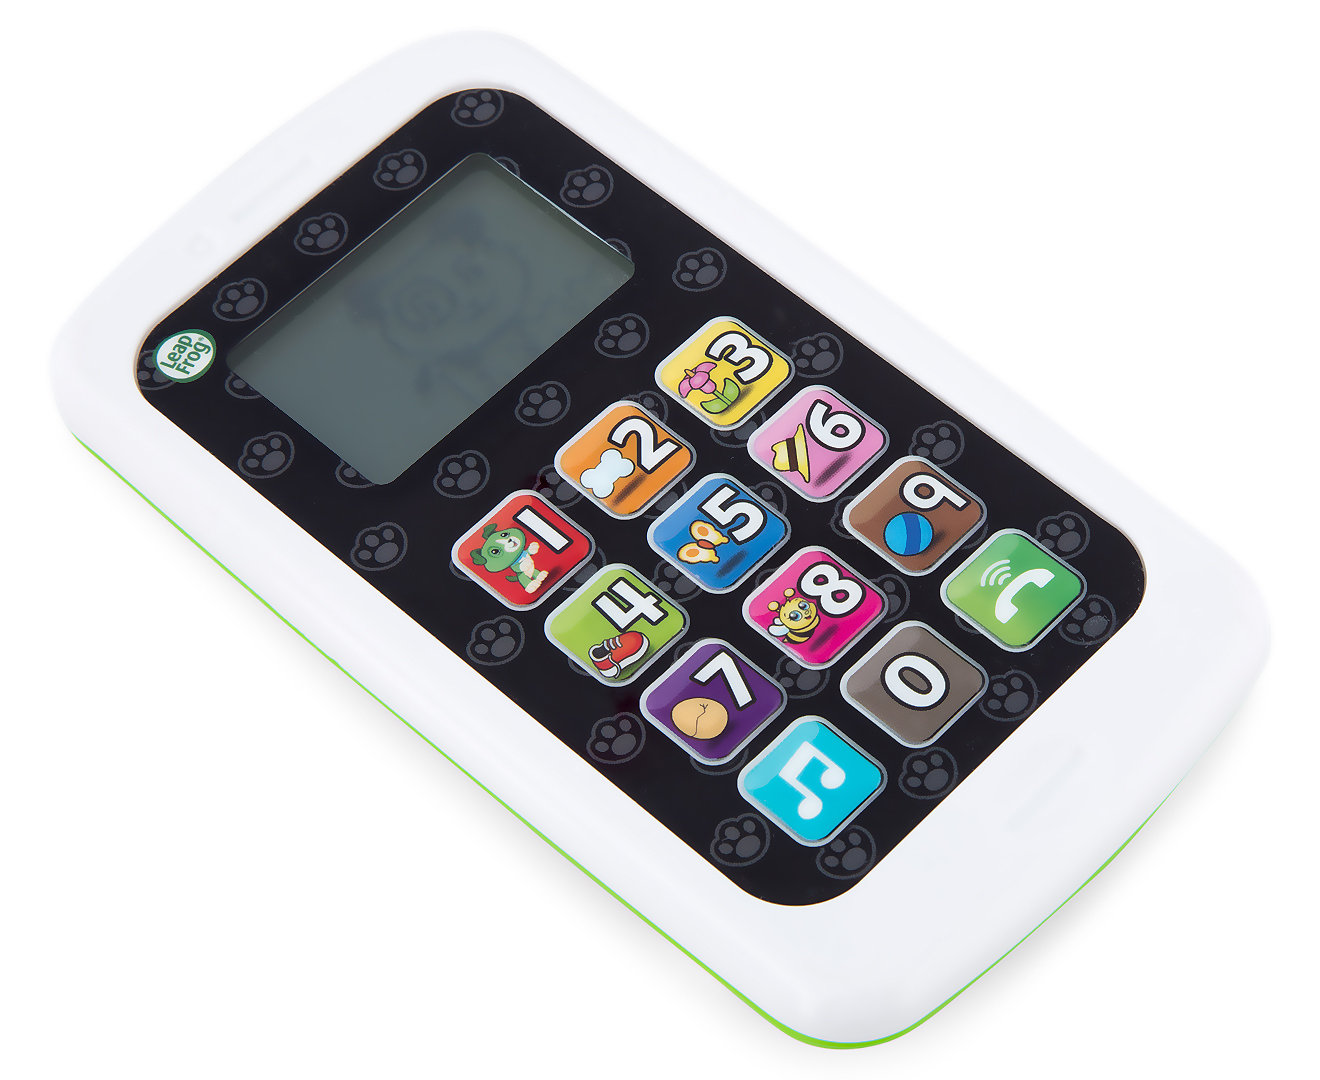 Leapfrog Chat Amp Count Cell Phone Toy Catch Com Au